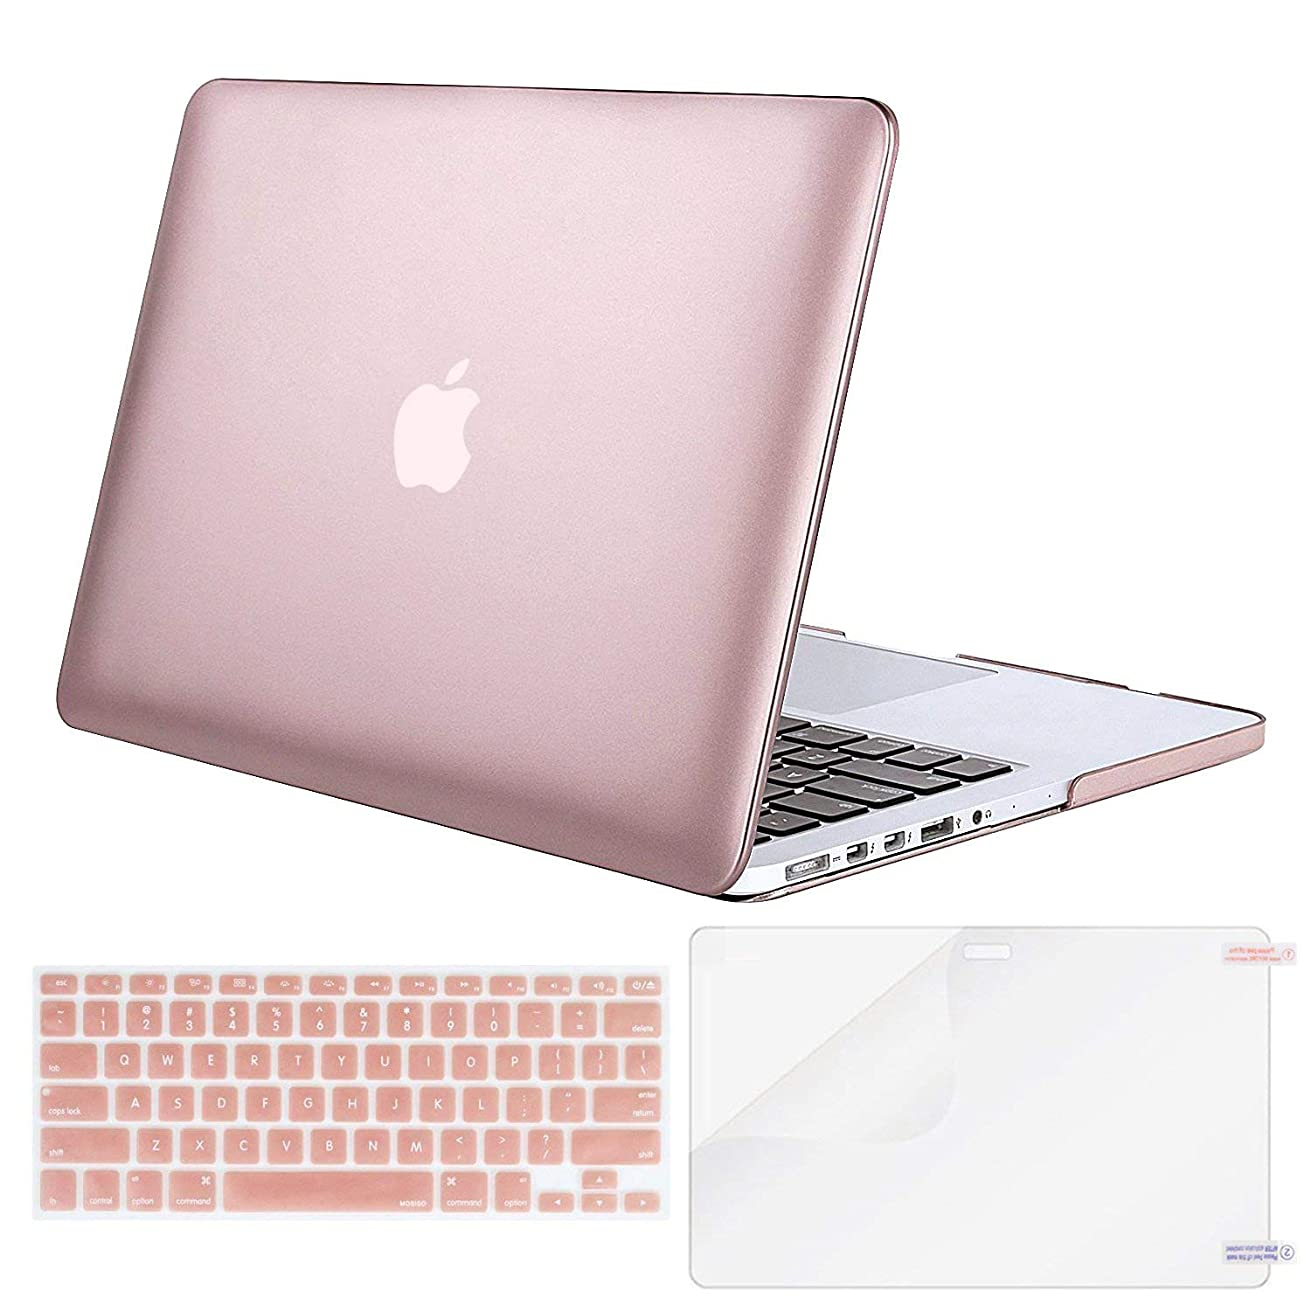 MOSISO Case Only Compatible Older Version MacBook Pro 15 inch Model A1398 with Retina Display (2015 - end 2012 Release), Plastic Hard Shell & Keyboard Cover & Screen Protector, Rose Gold